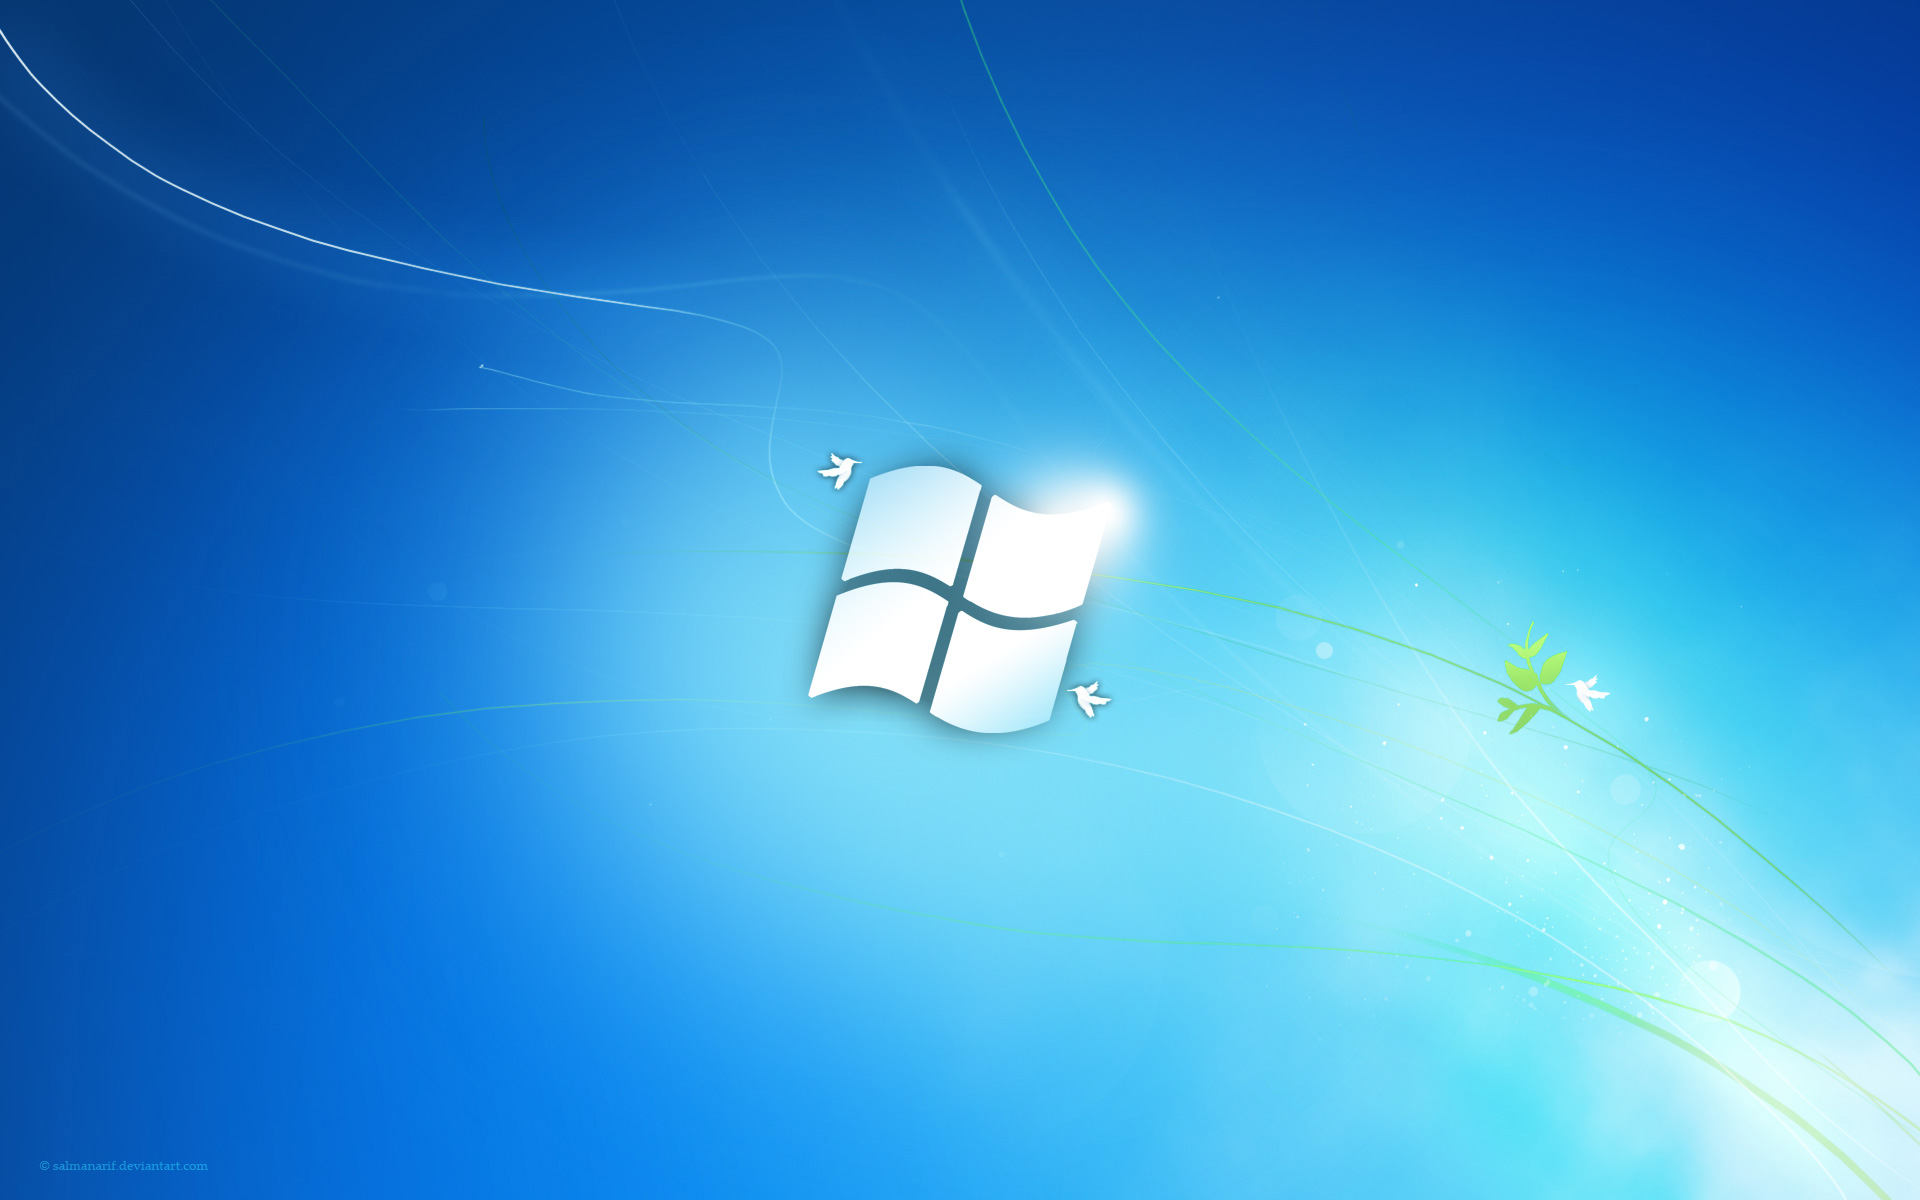 Windows 7 Flag205237031 - Windows 7 Flag - Windows, Flag